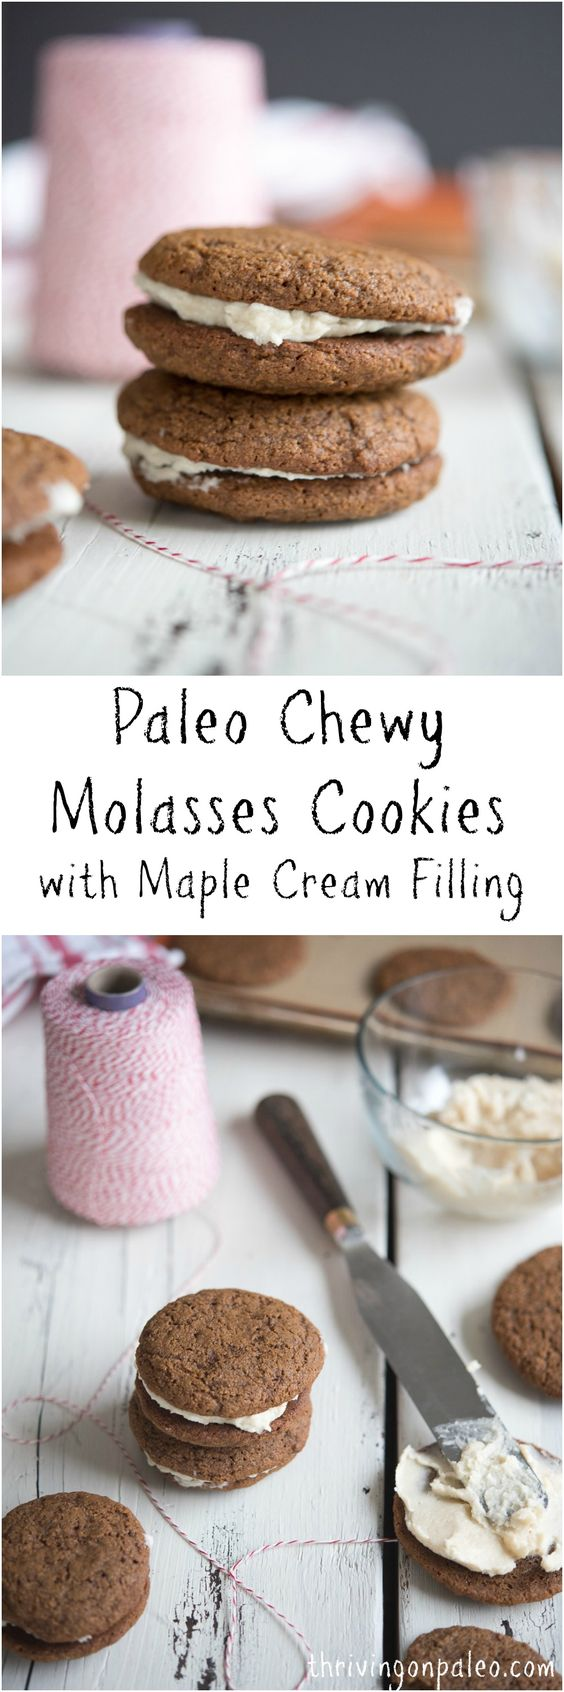 paleo-chewy-molasses-cookies-with-maple-cream-filling-gluten-free-dairy-free